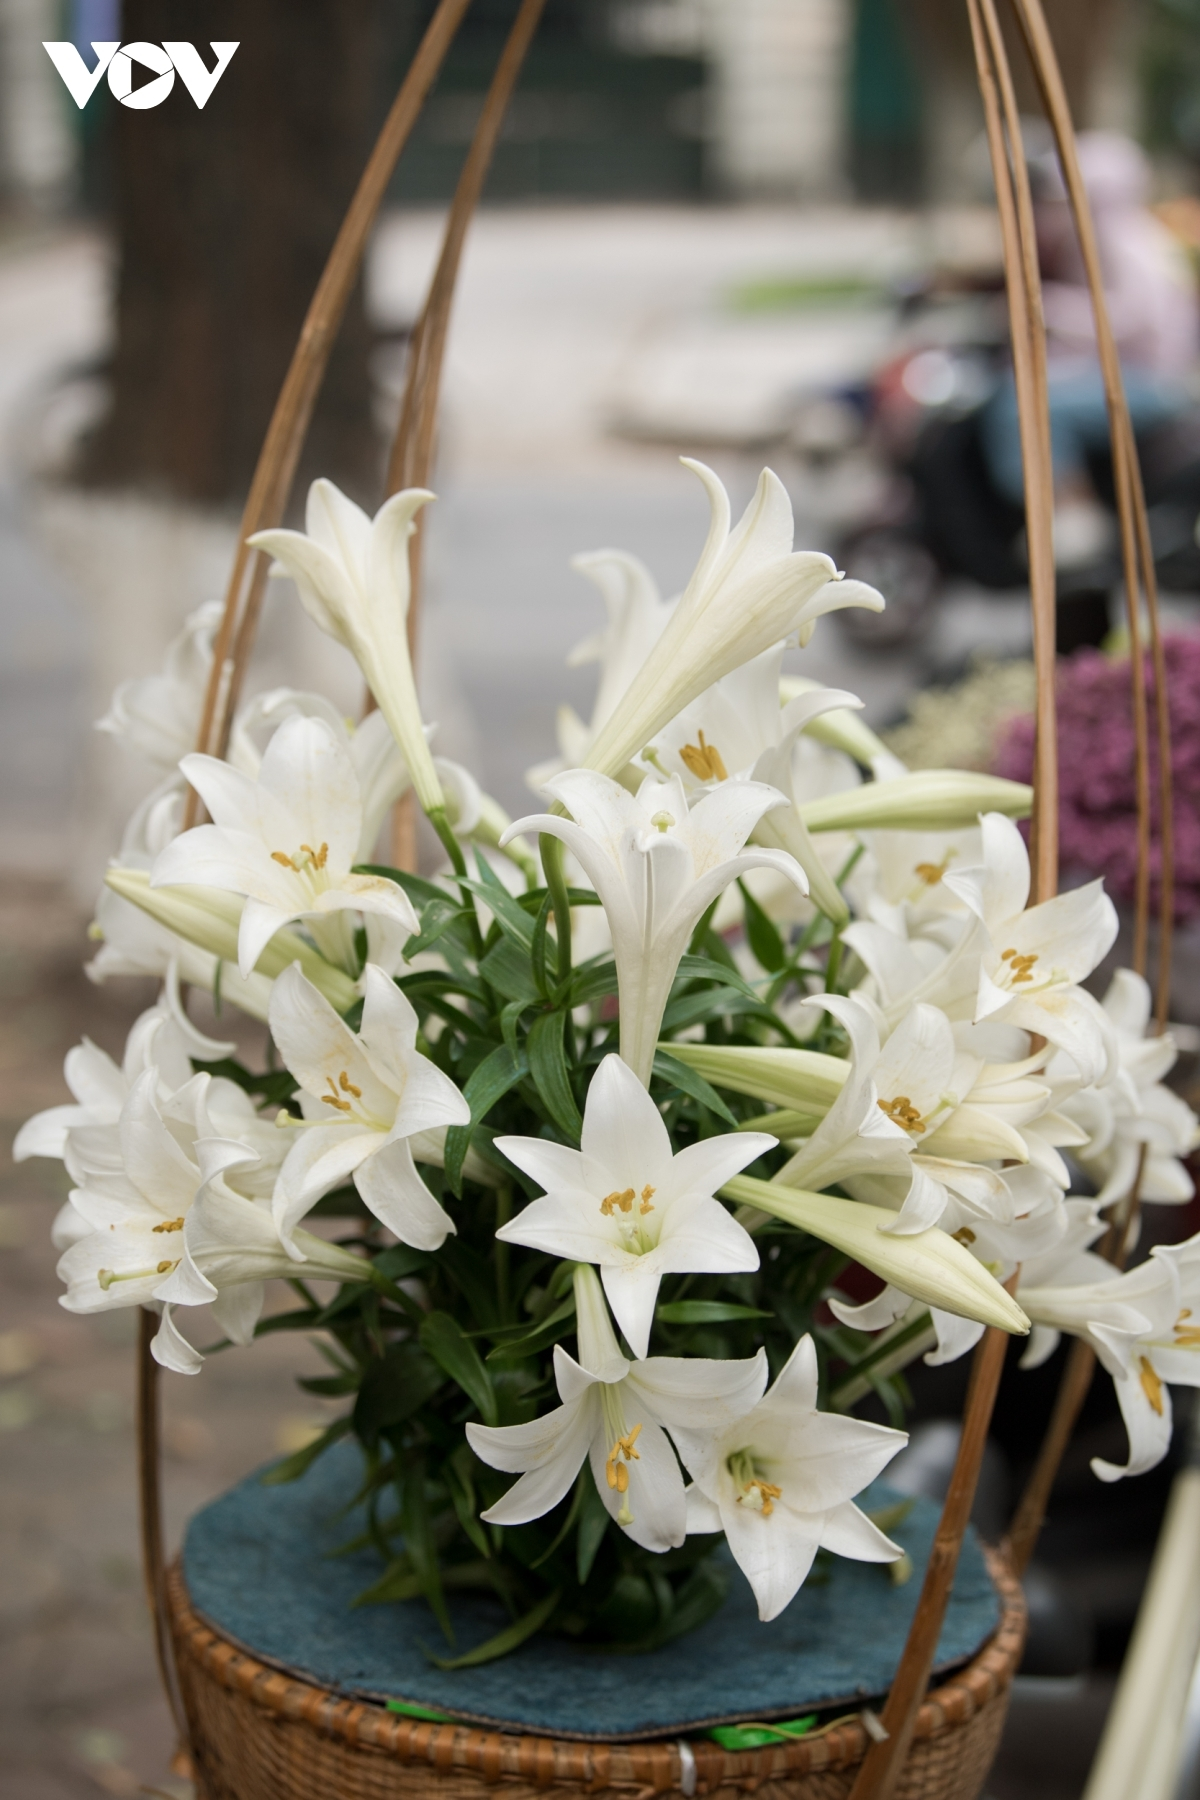 Their subtle scent coupled with elegant white petals allows the lilies to enthrall many people.